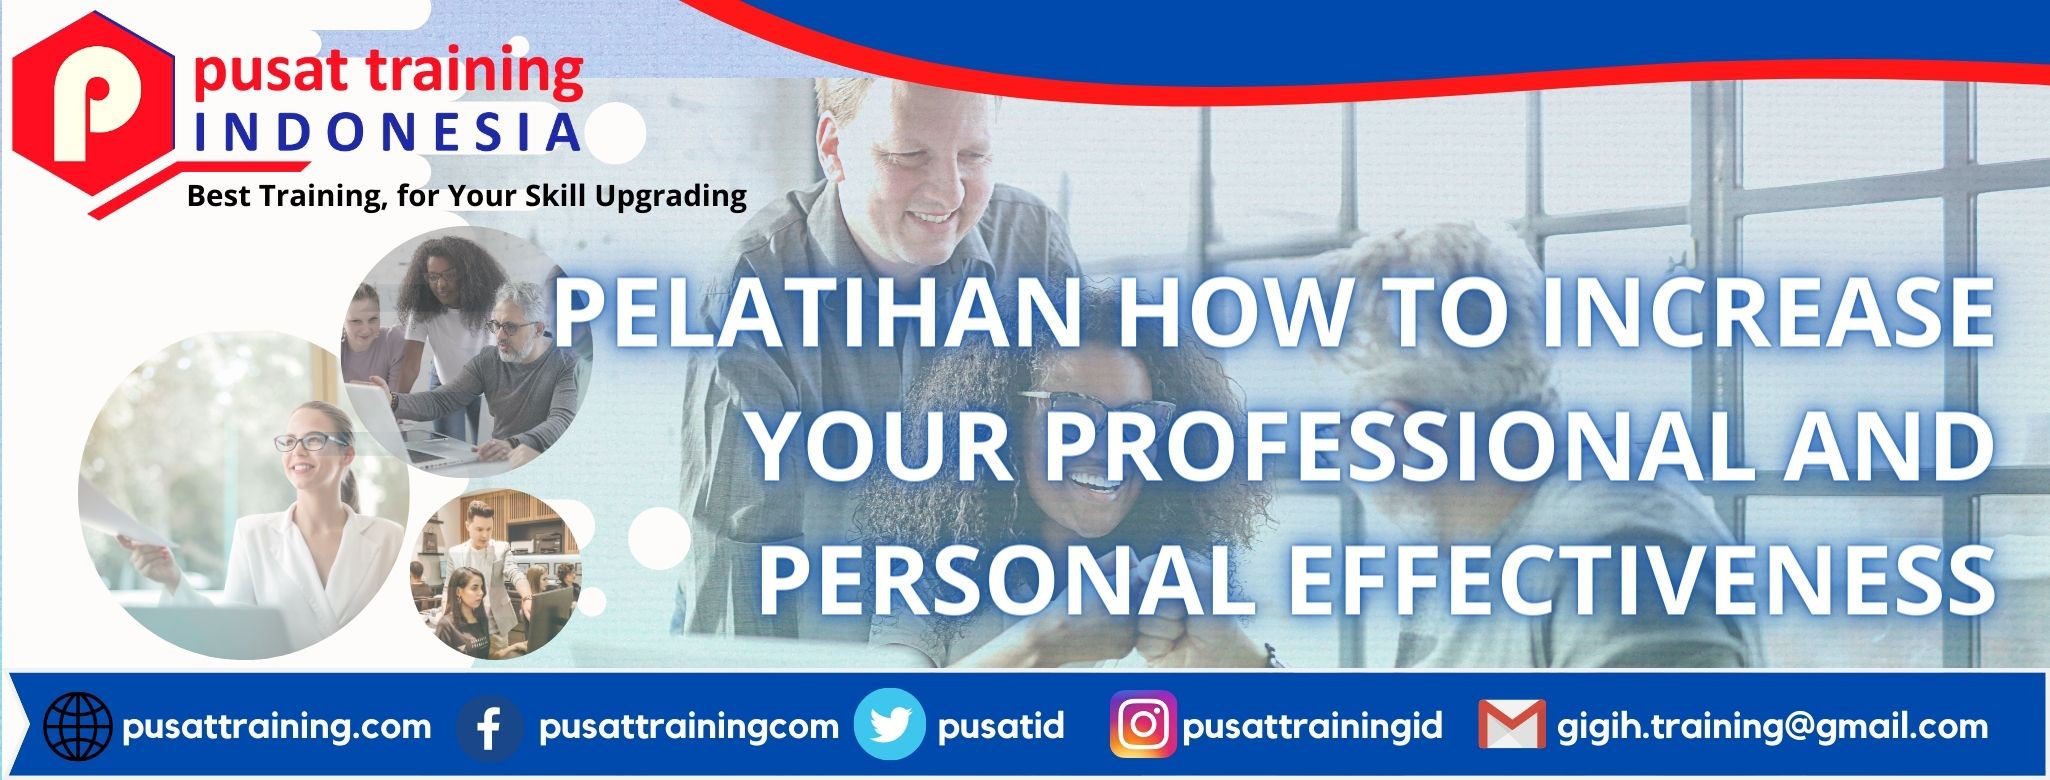 pelatihan-how-to-increase-your-professional-and-personal-effectiveness